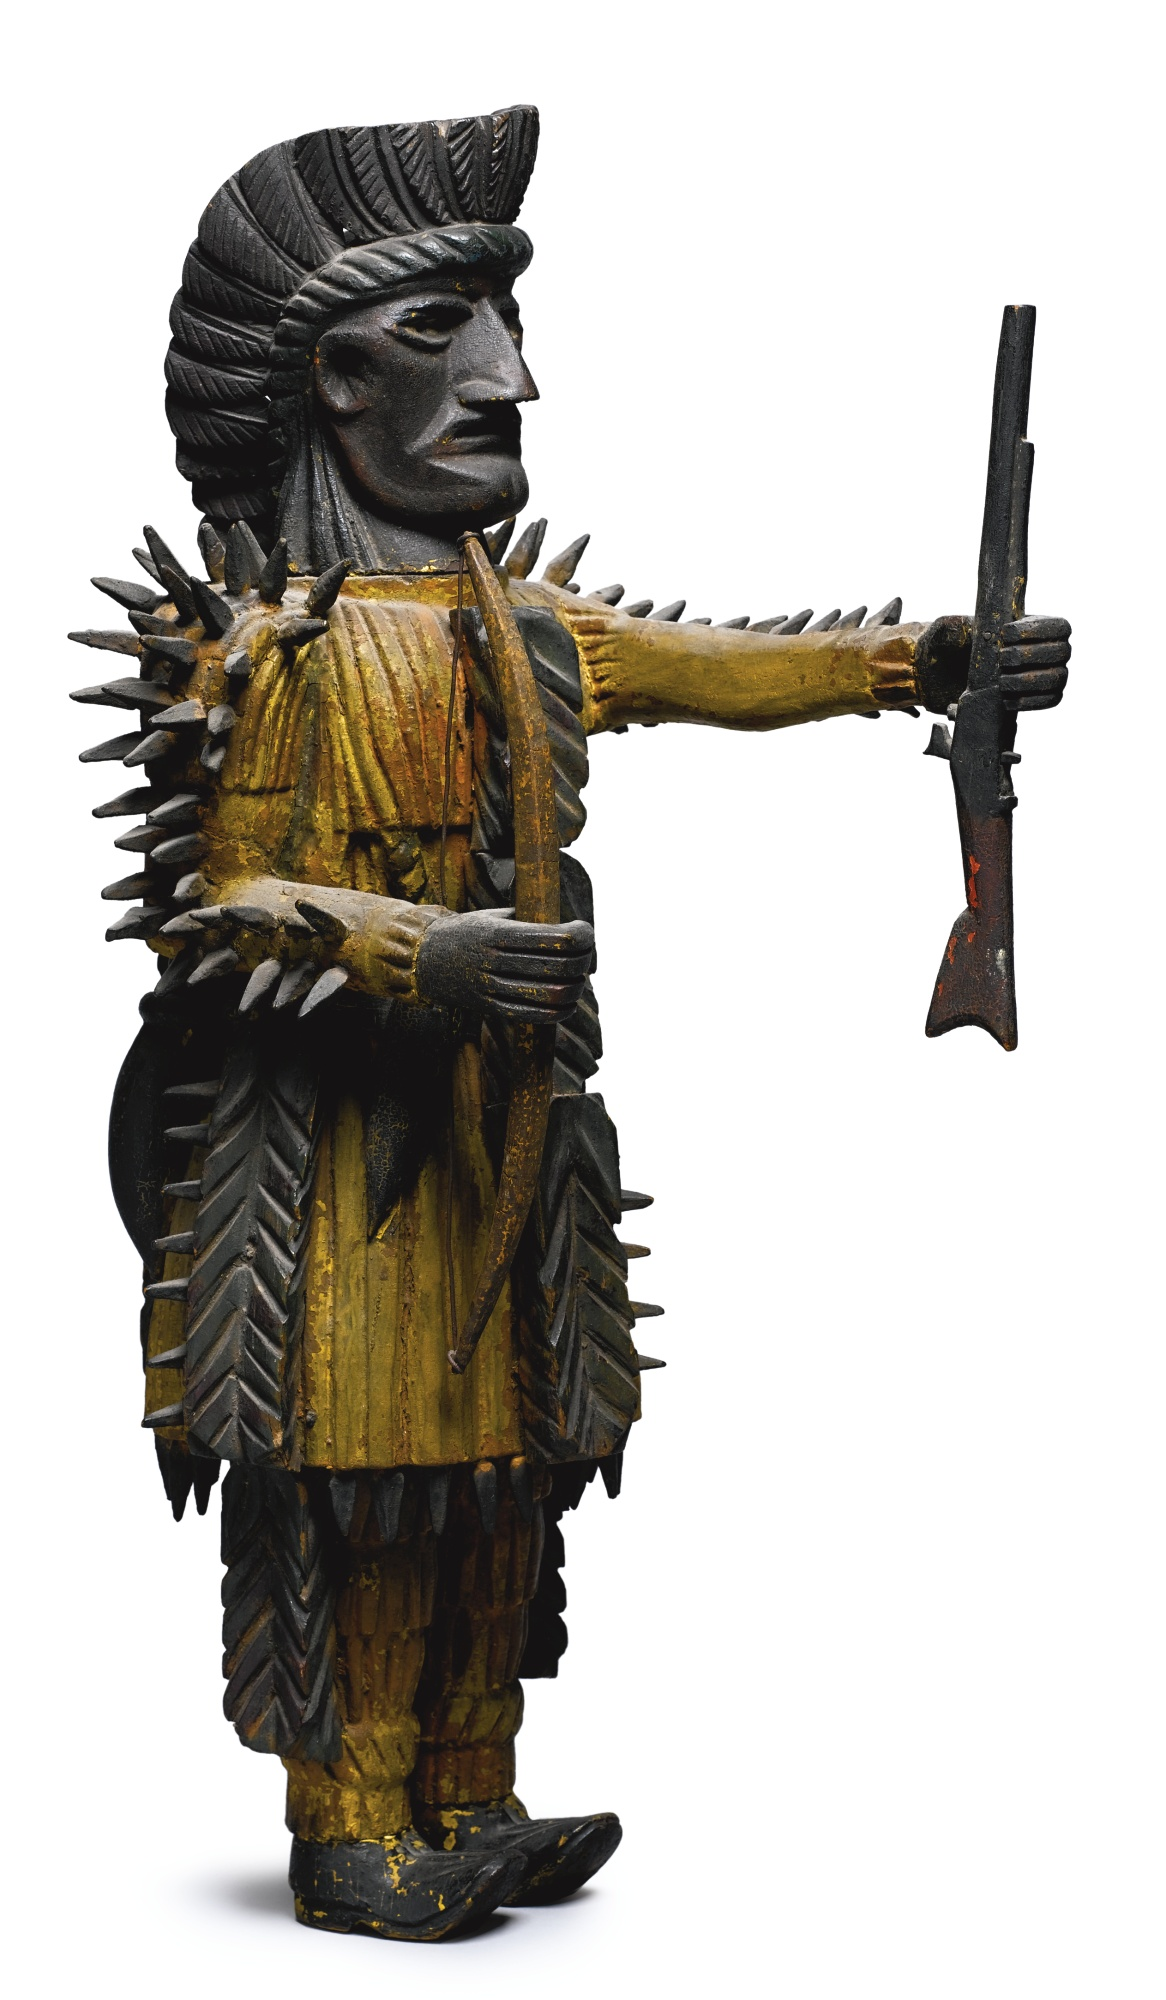 RARE CARVED AND PAINTED PINE INDIAN CHIEF WITH RIFLE, HATCHET, BOW AND QUIVER OF ARROWS, American, Late 19th/Early 20th Century